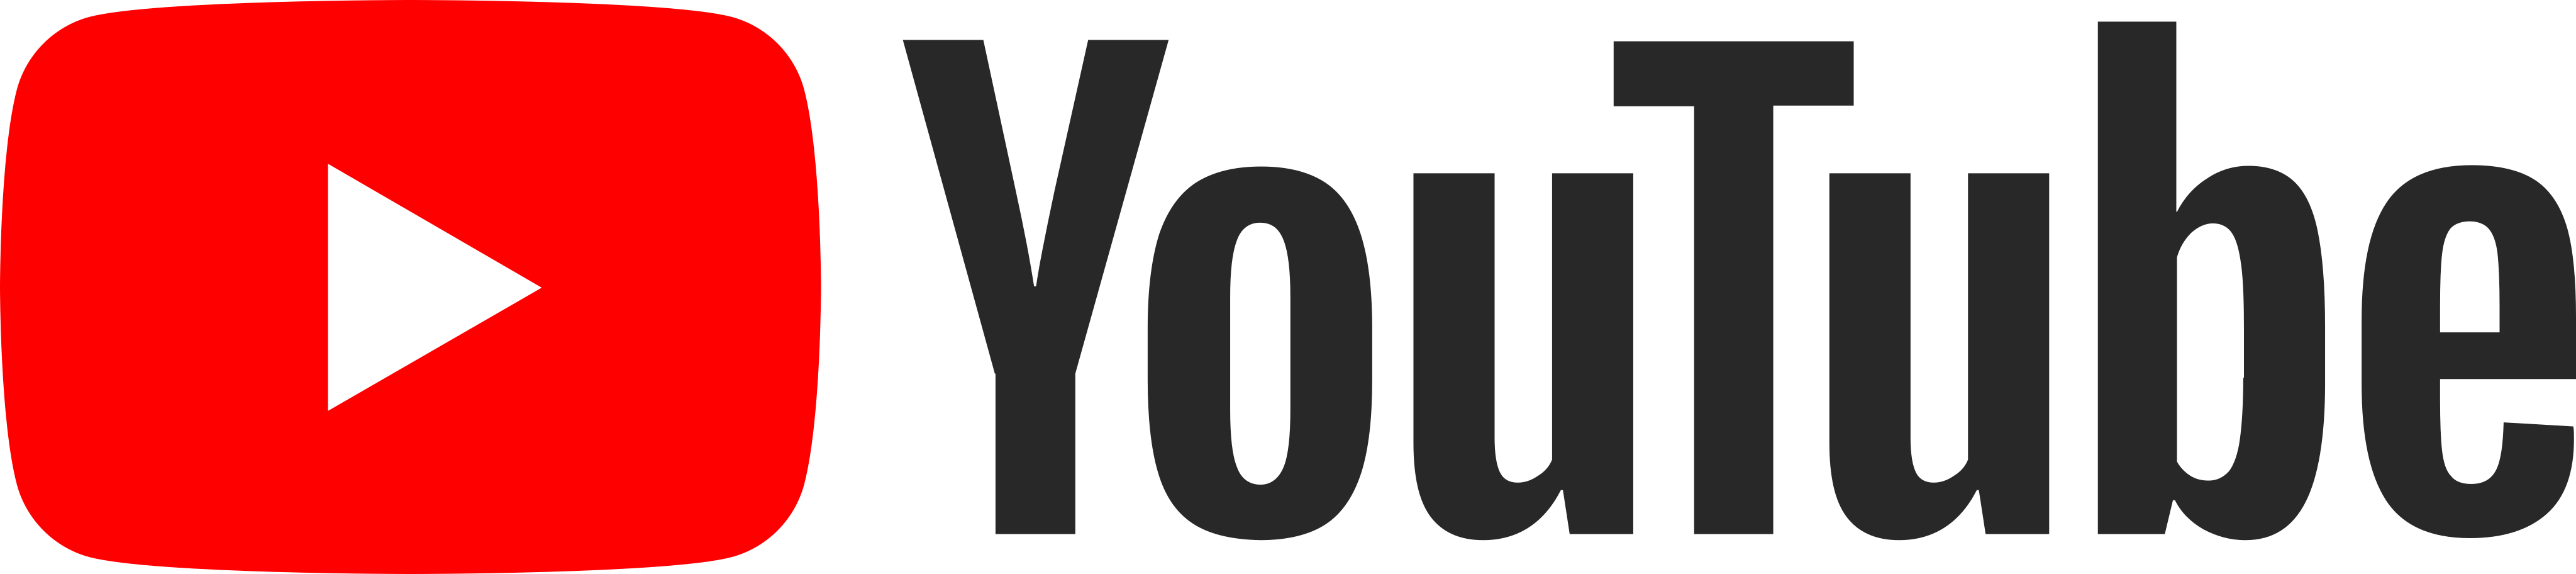 youtube logo 9 - YouTube Logo